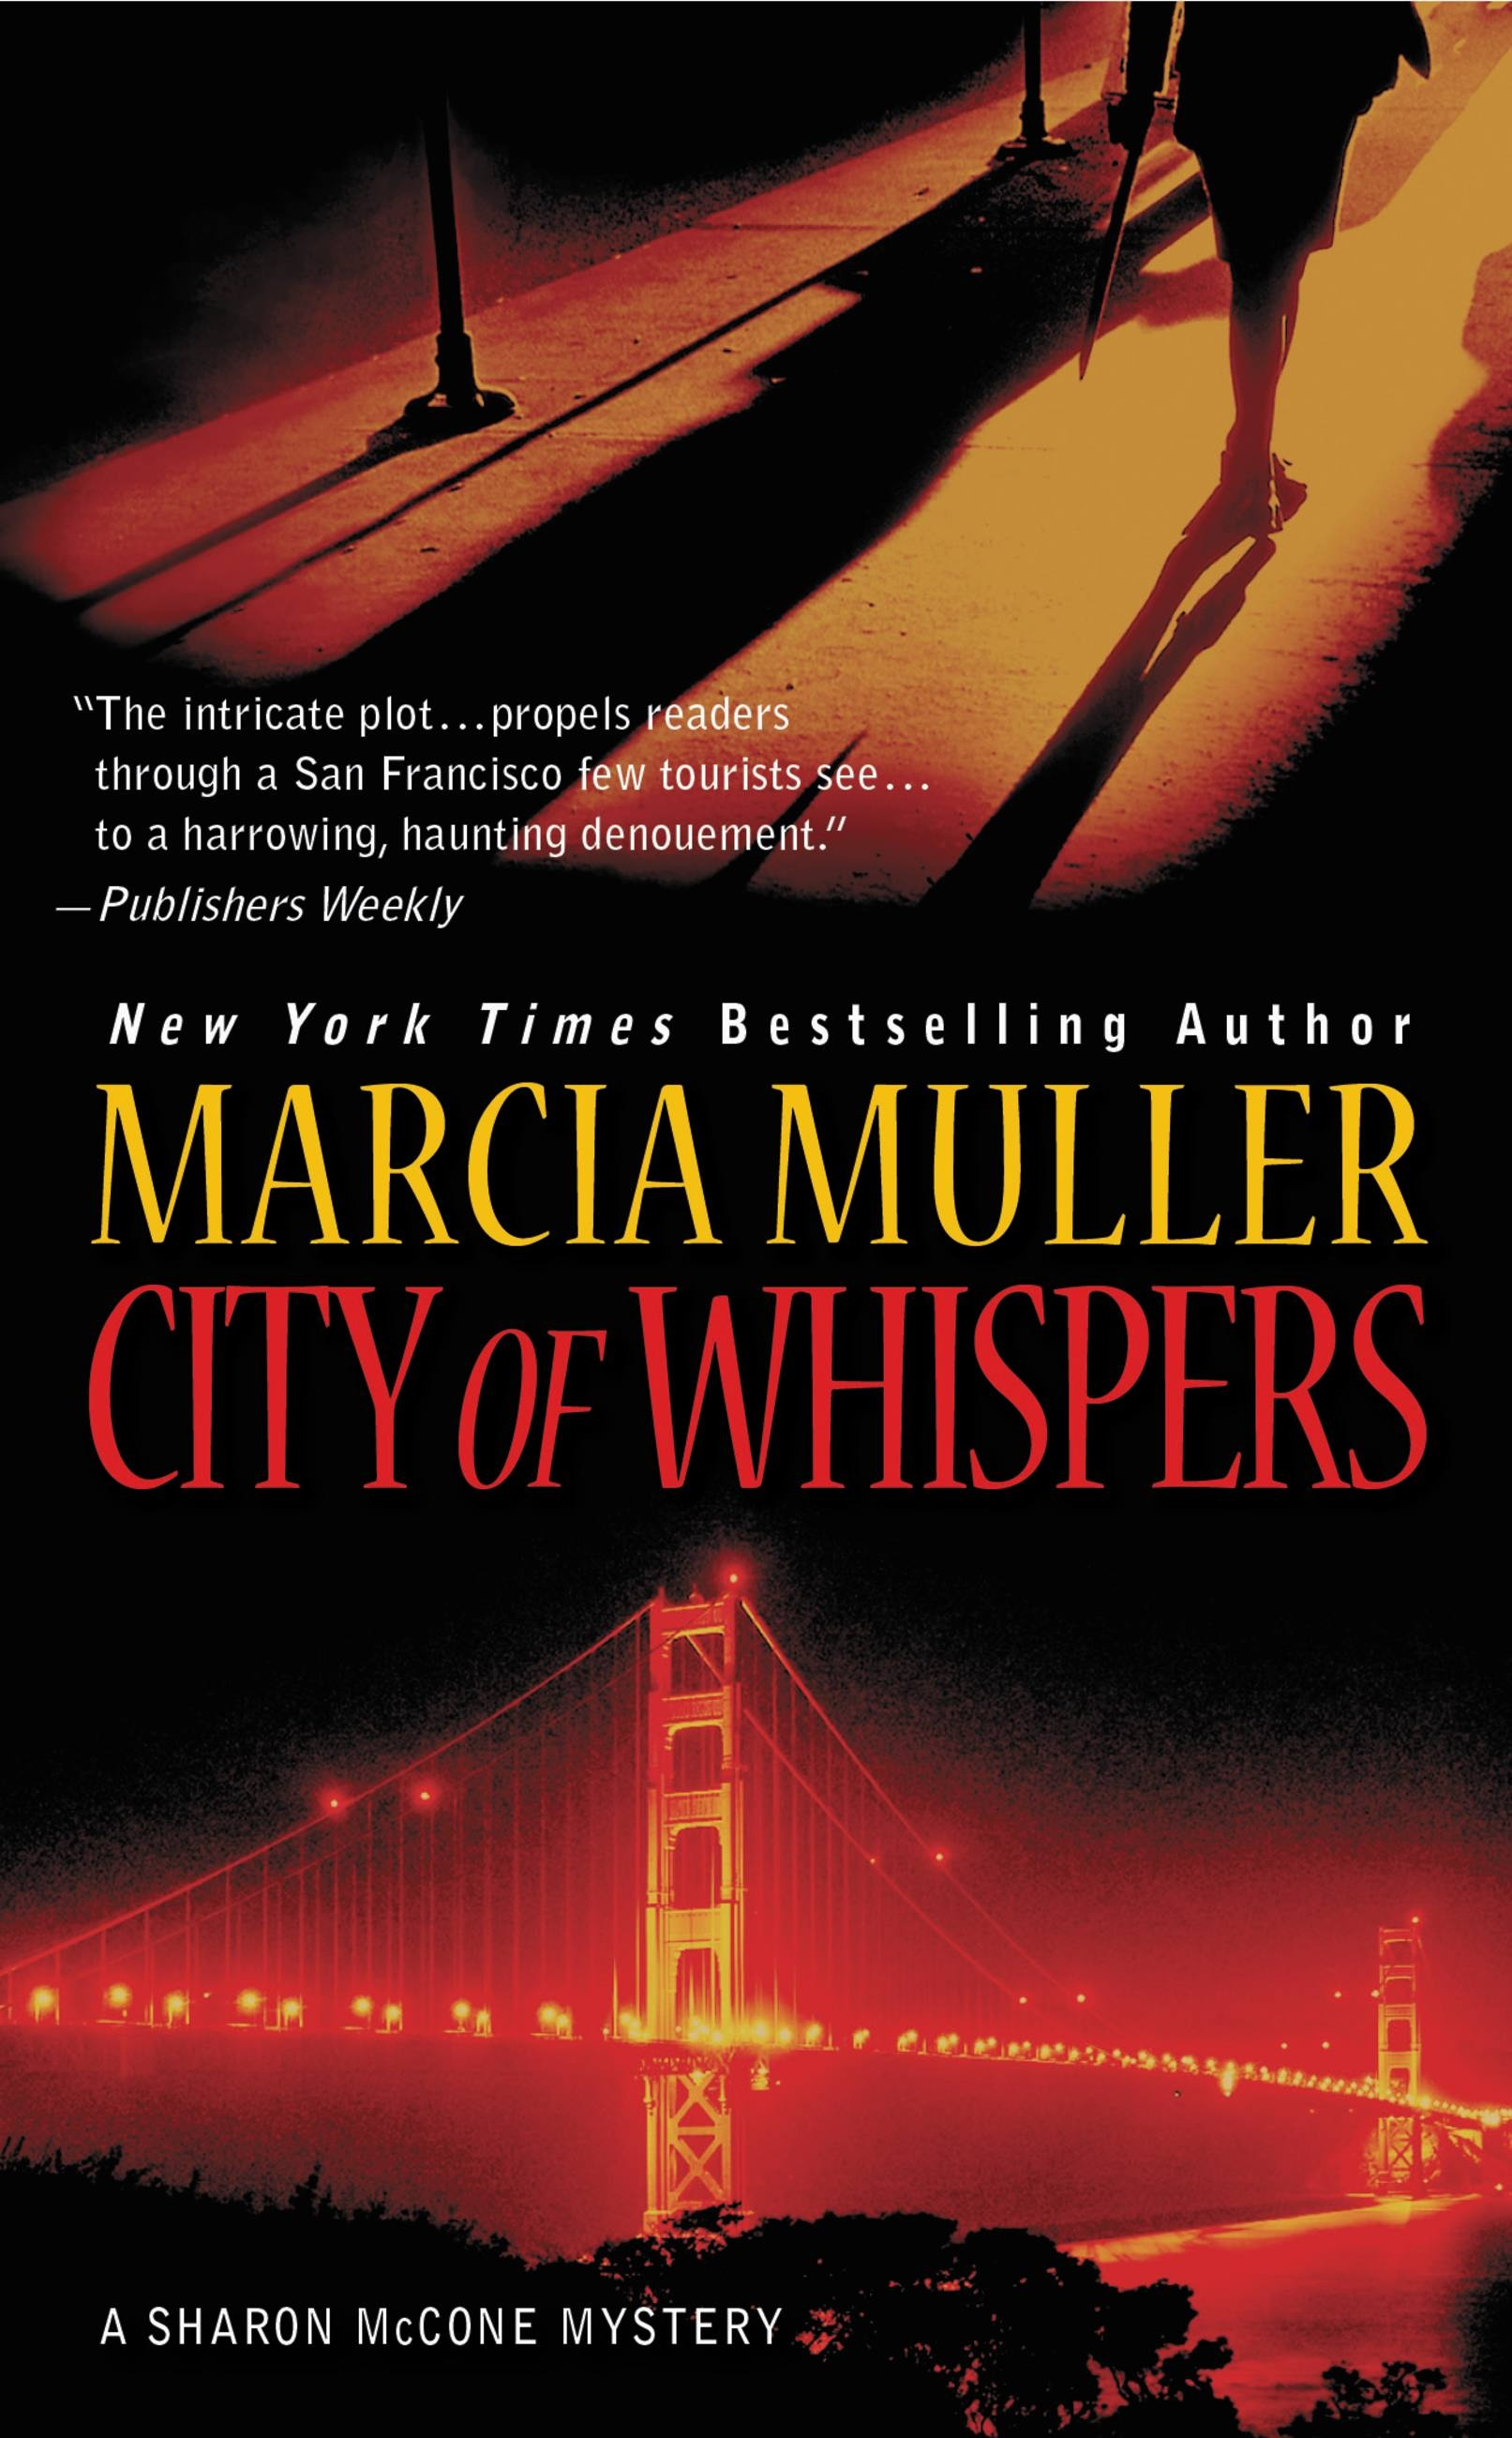 City of Whispers